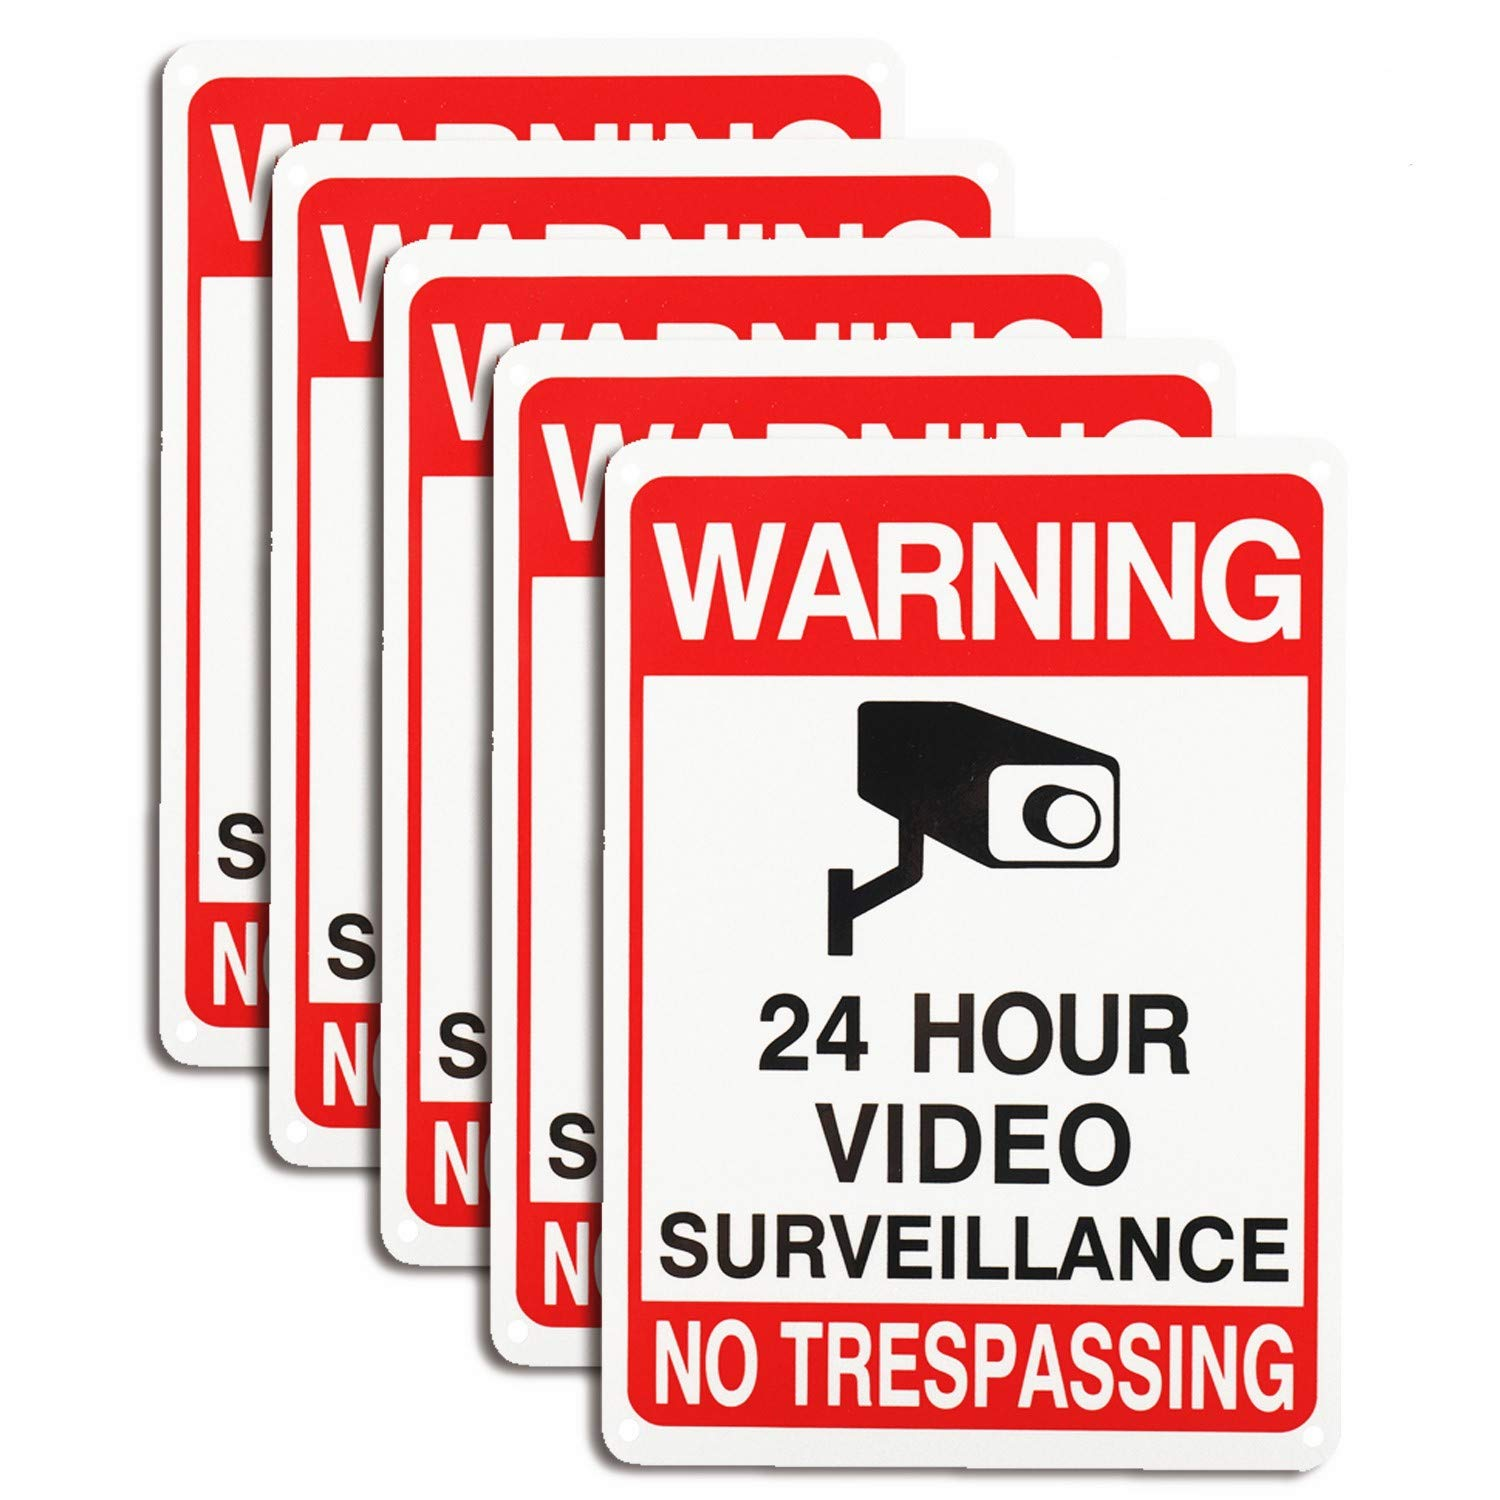 YaeCCC 5 Pack Video Surveillance Signs, No Trespassing Aluminum Signs for Outdoor Security Camera Warning